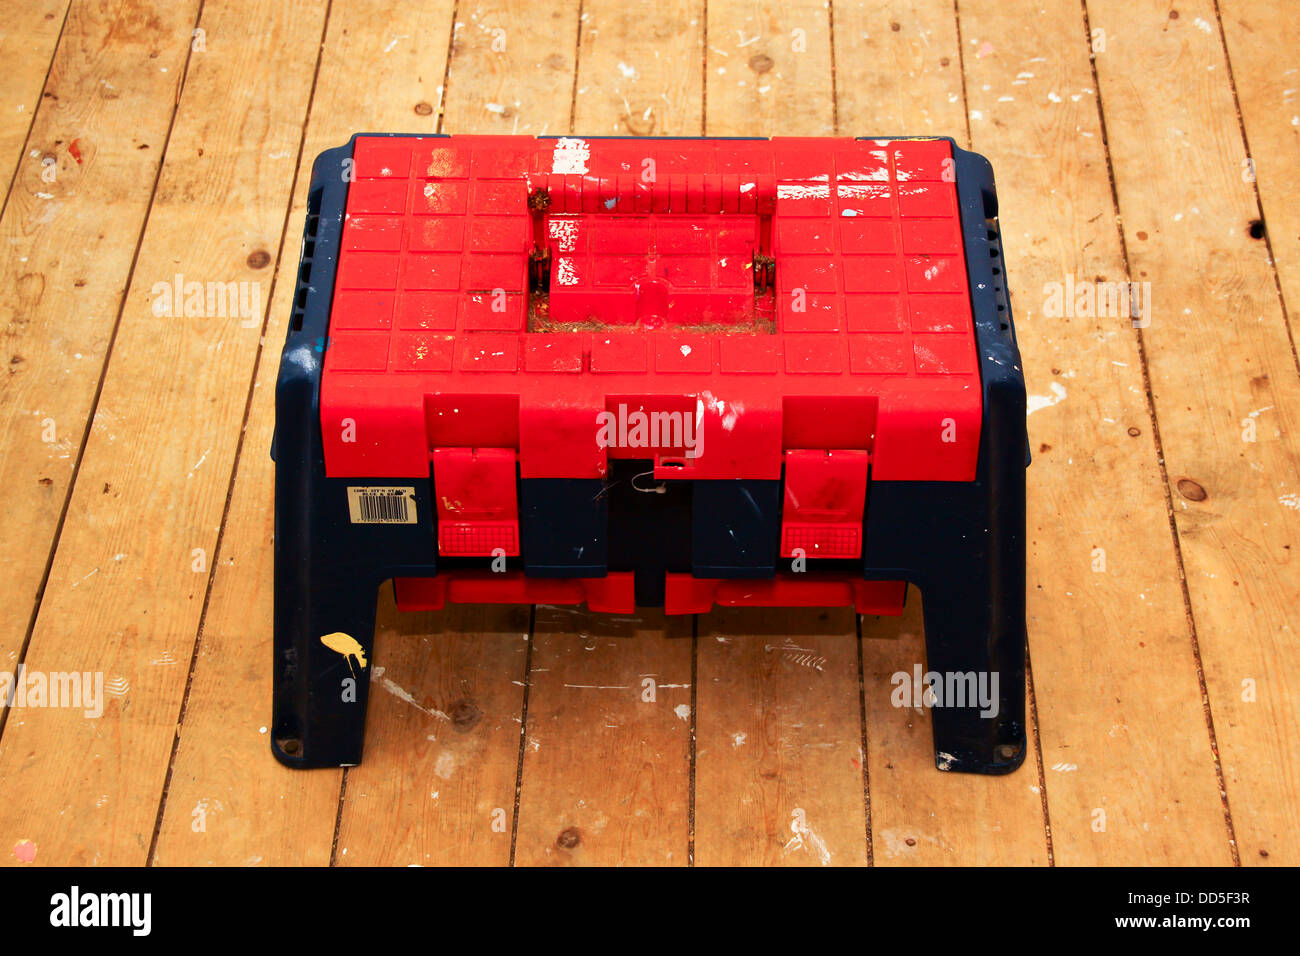 Step Stool Toolbox On Bare Floorboards Stock Photo